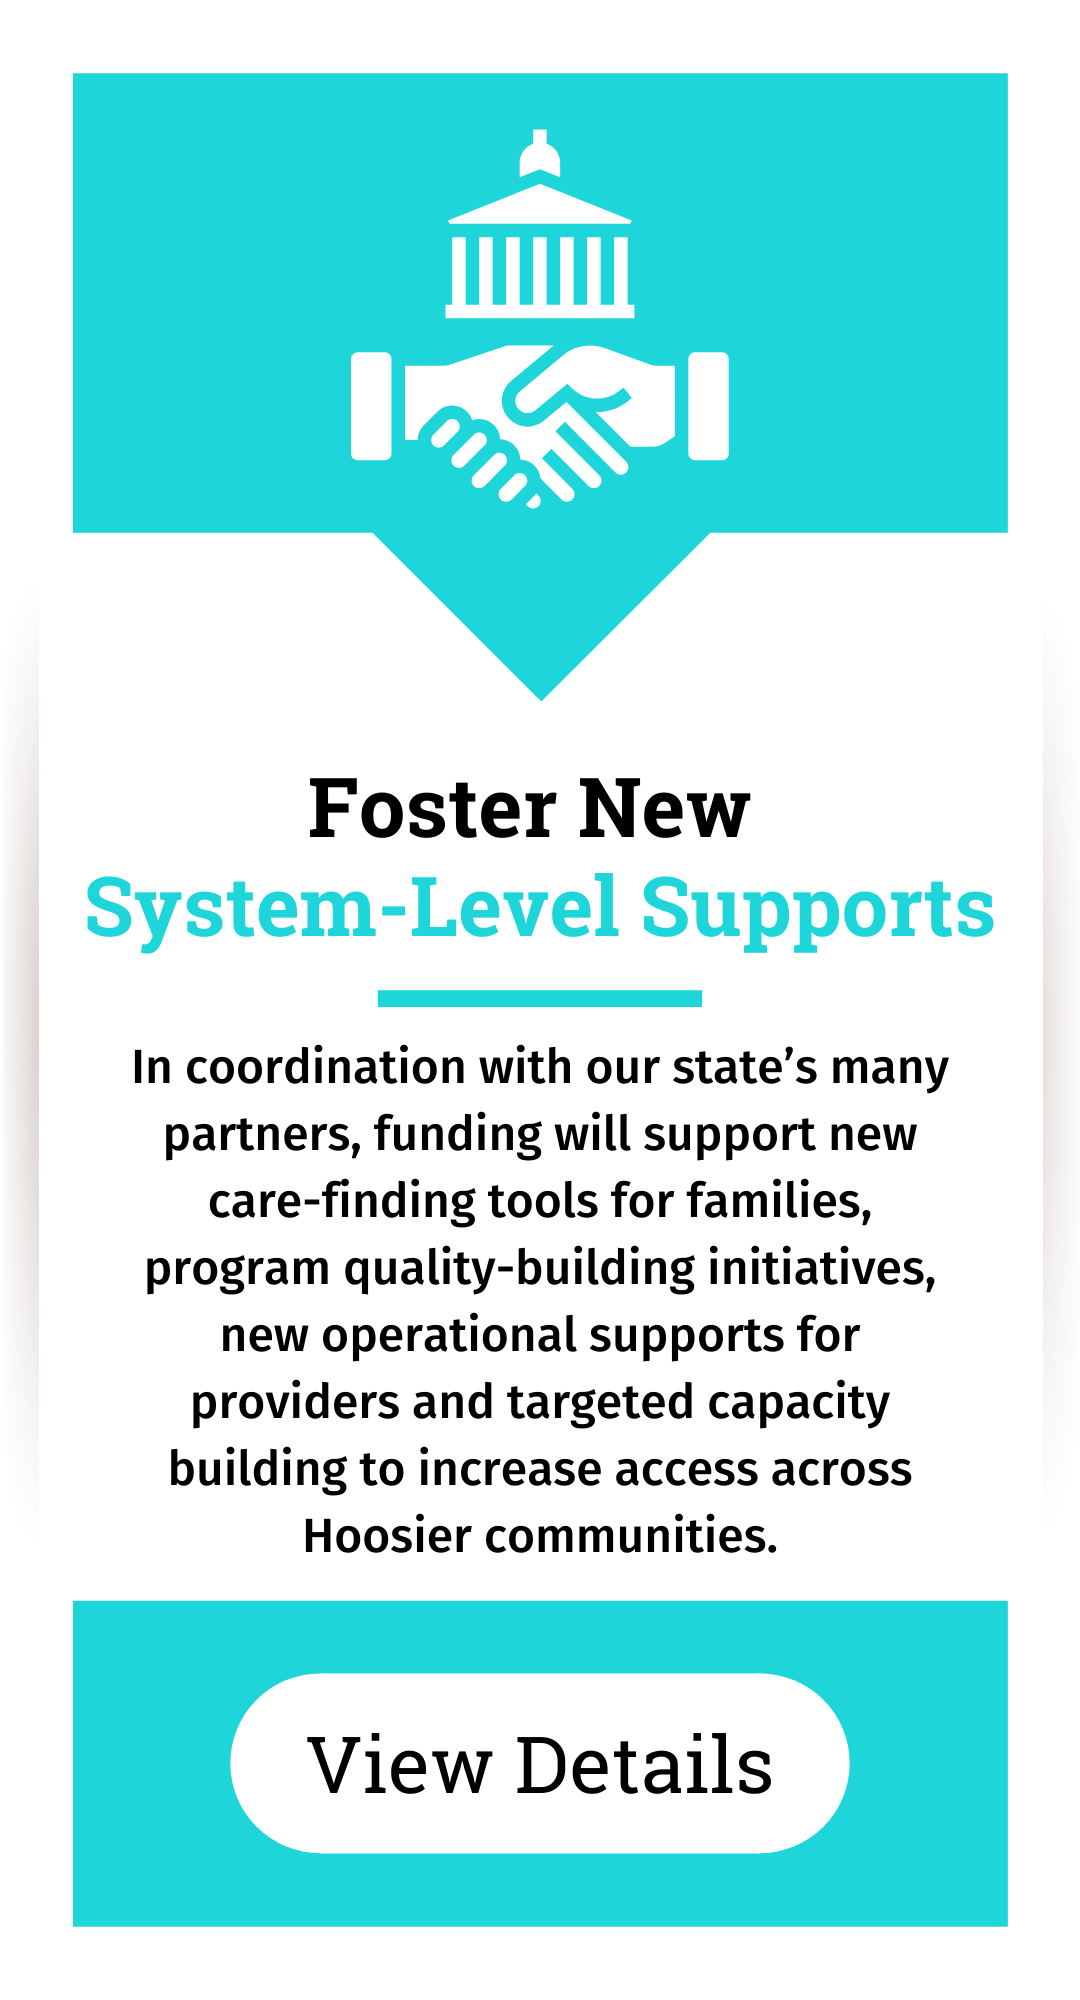 Foster new supports